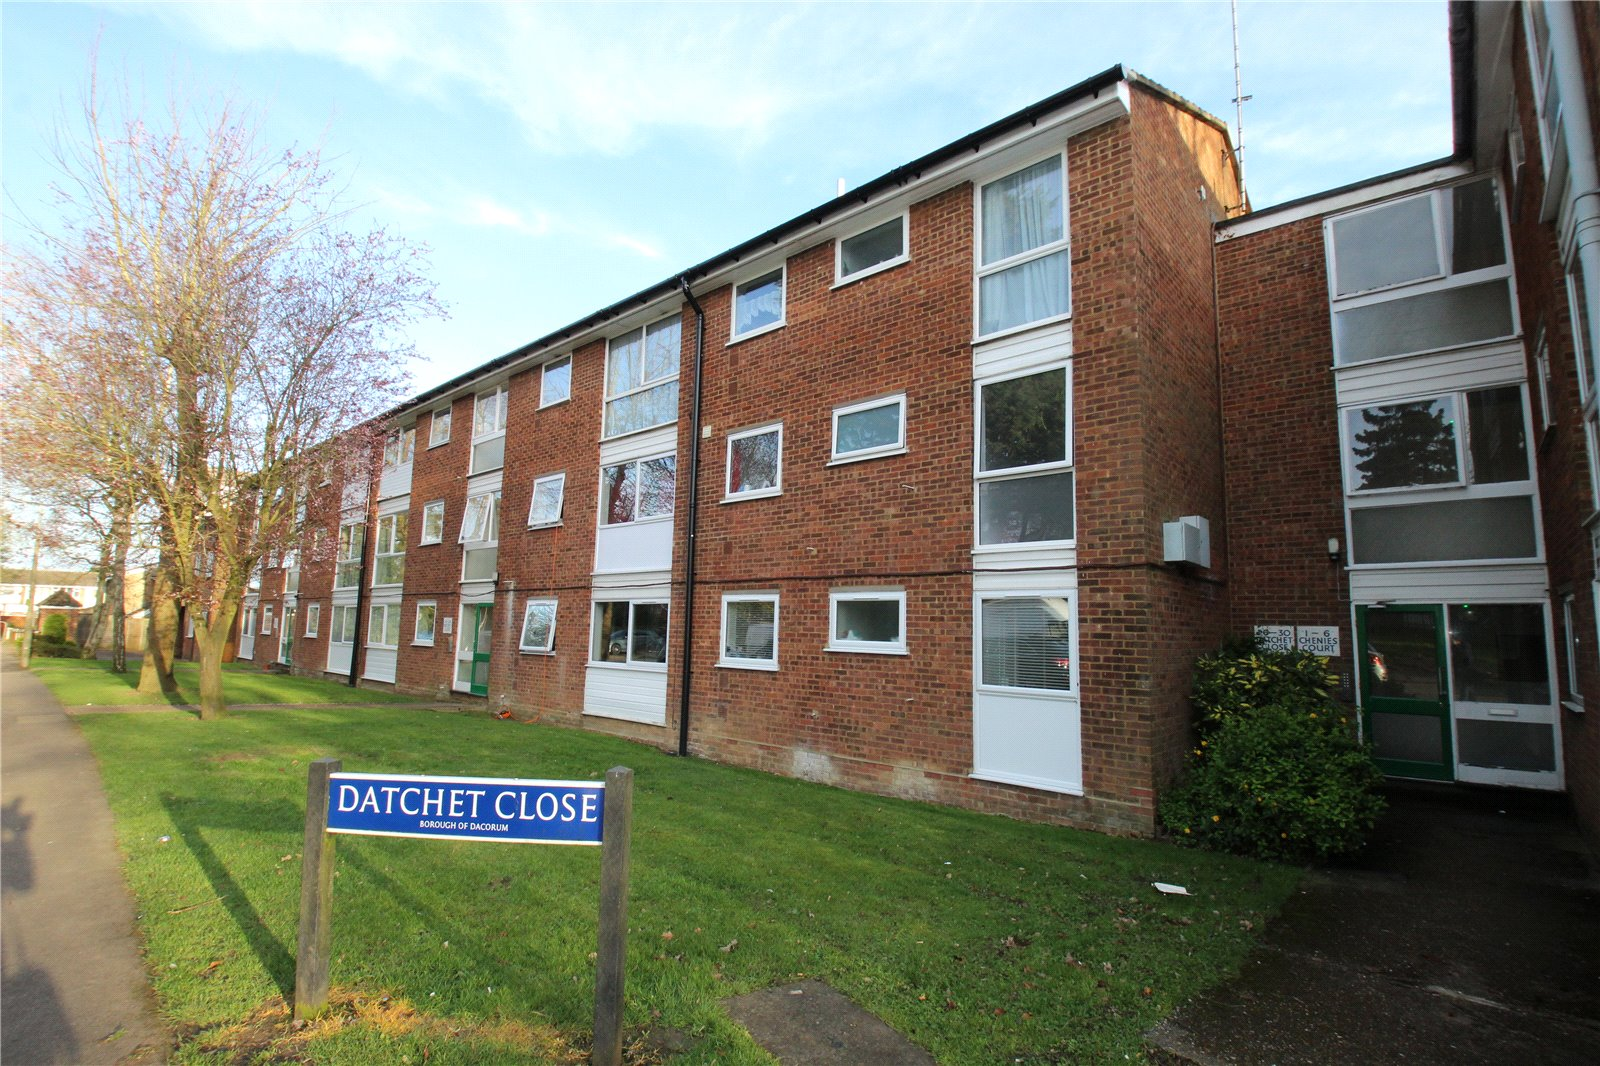 Datchet Close Image